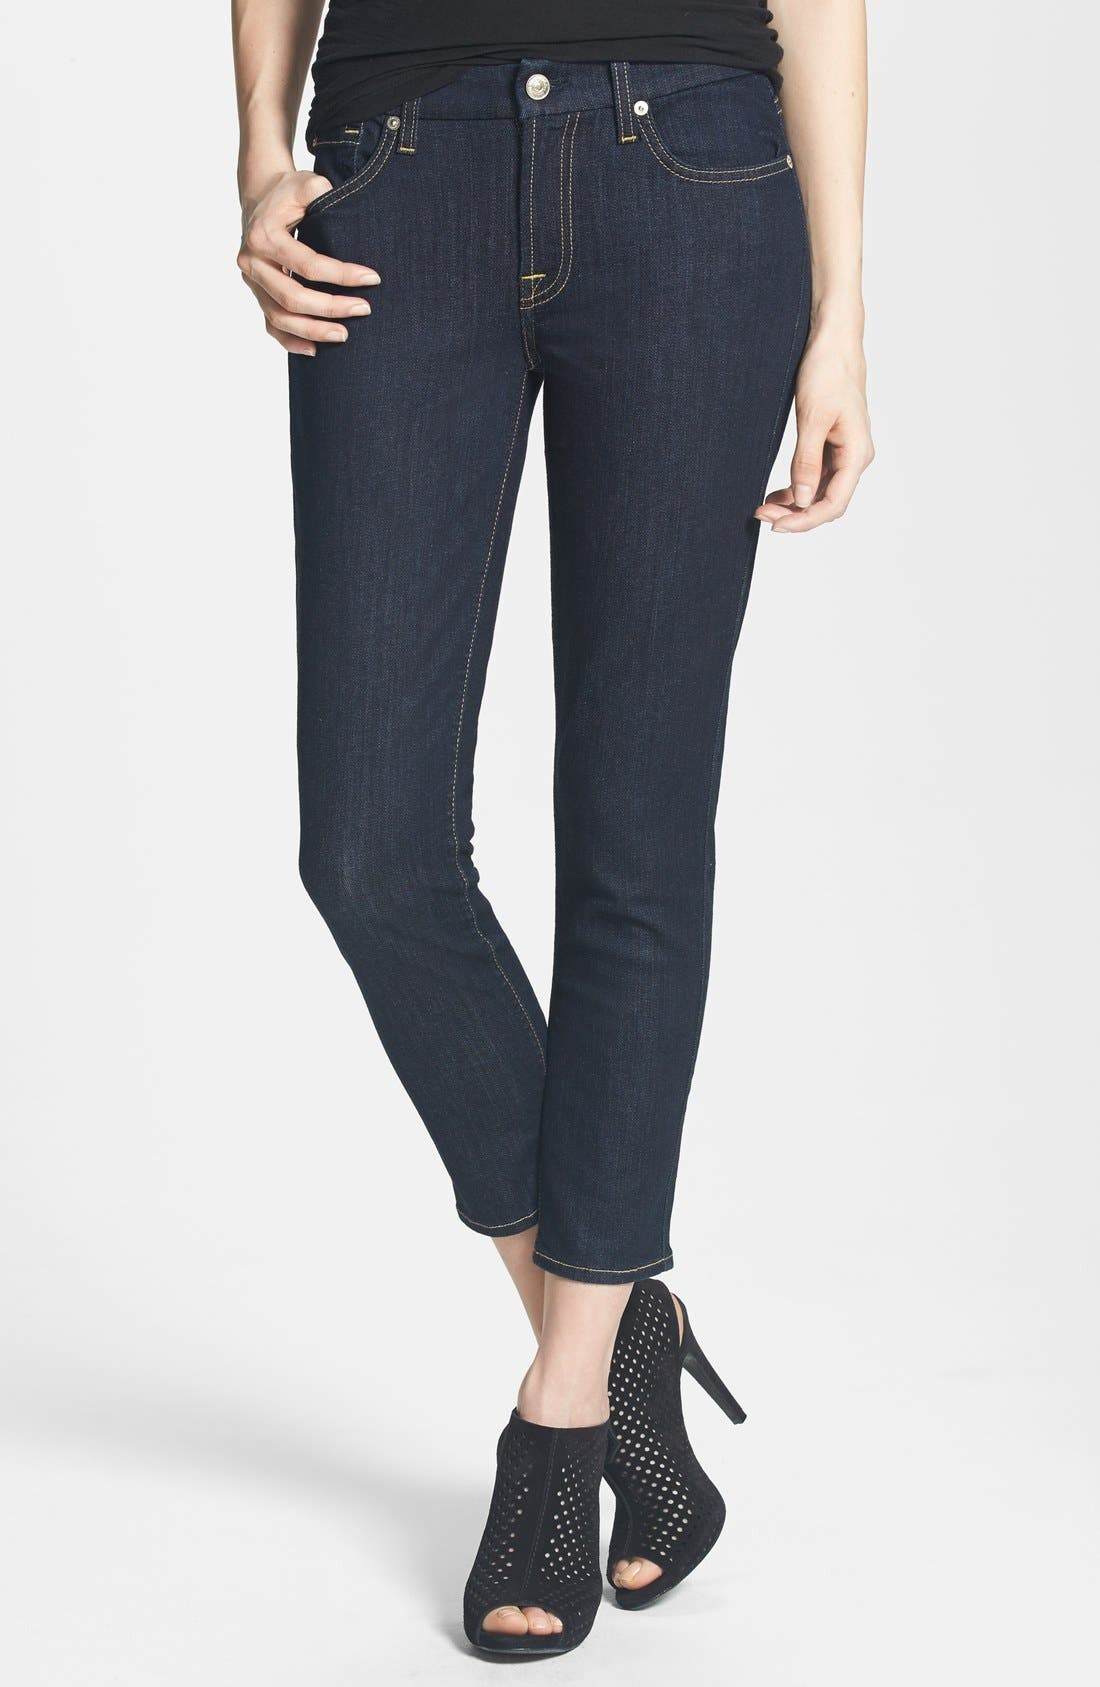 Alternate Image 1 Selected - 7 For All Mankind® 'Kimmie' Crop Skinny Jeans (Ink)